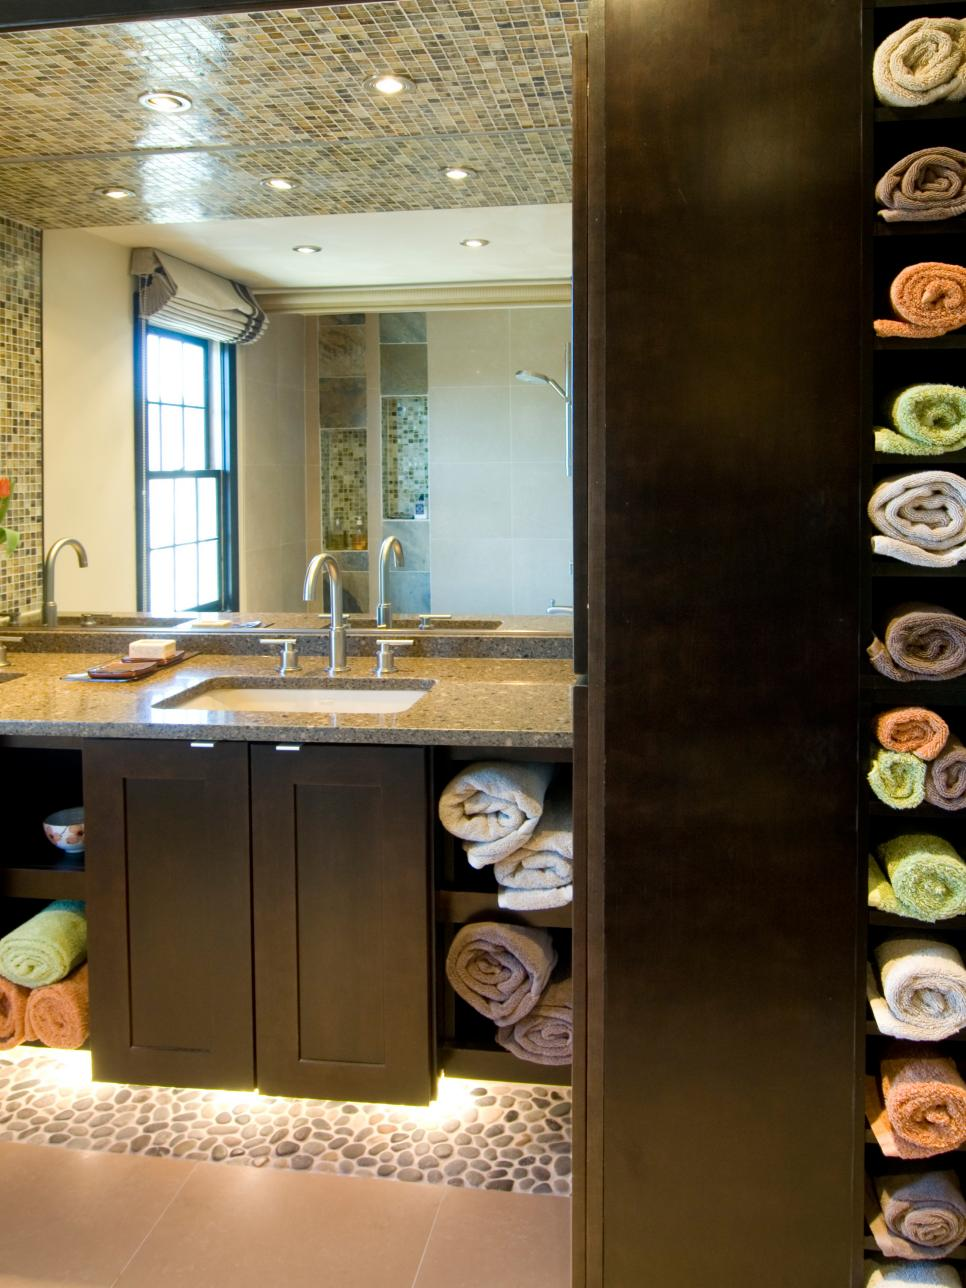 12 clever bathroom storage ideas hgtv - Storage Design Ideas